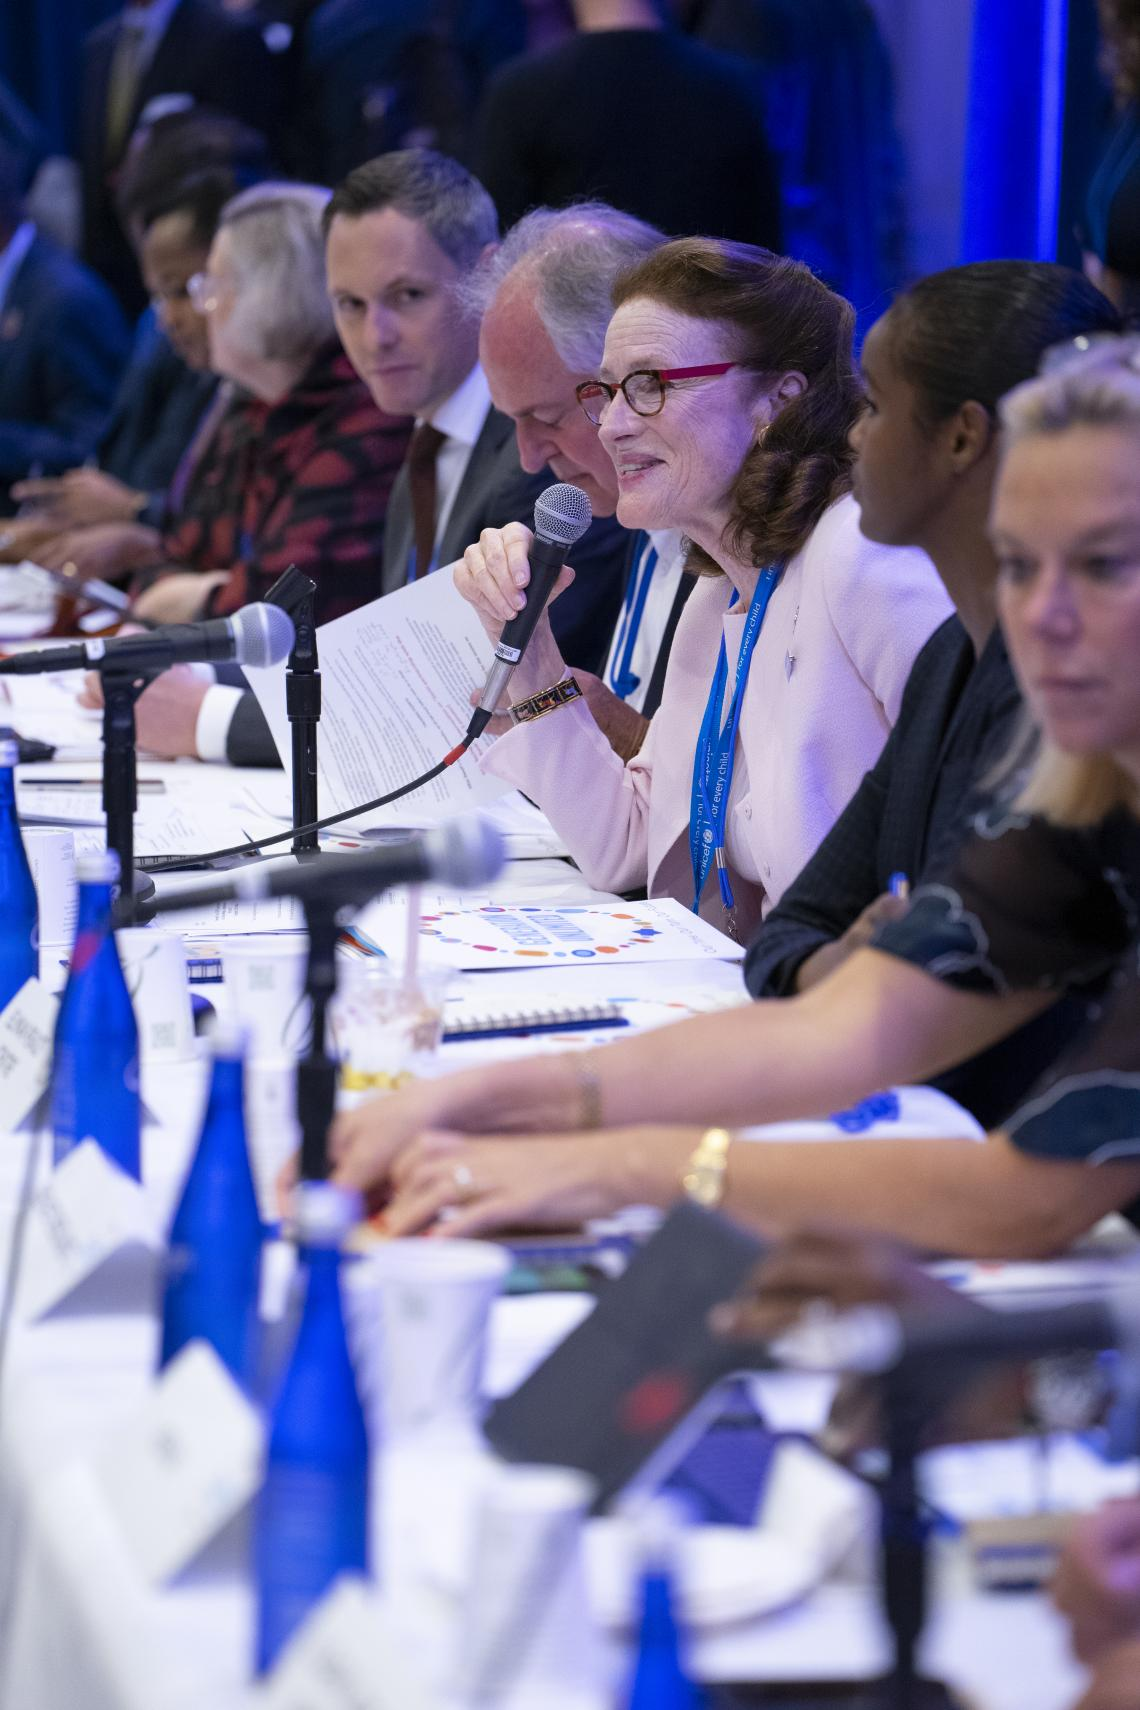 UNICEF Executive Director Henriette H. Fore speaks during the Third Global Board Meeting of Generation Unlimited on 23 September 2019 at UNICEF House in New York.